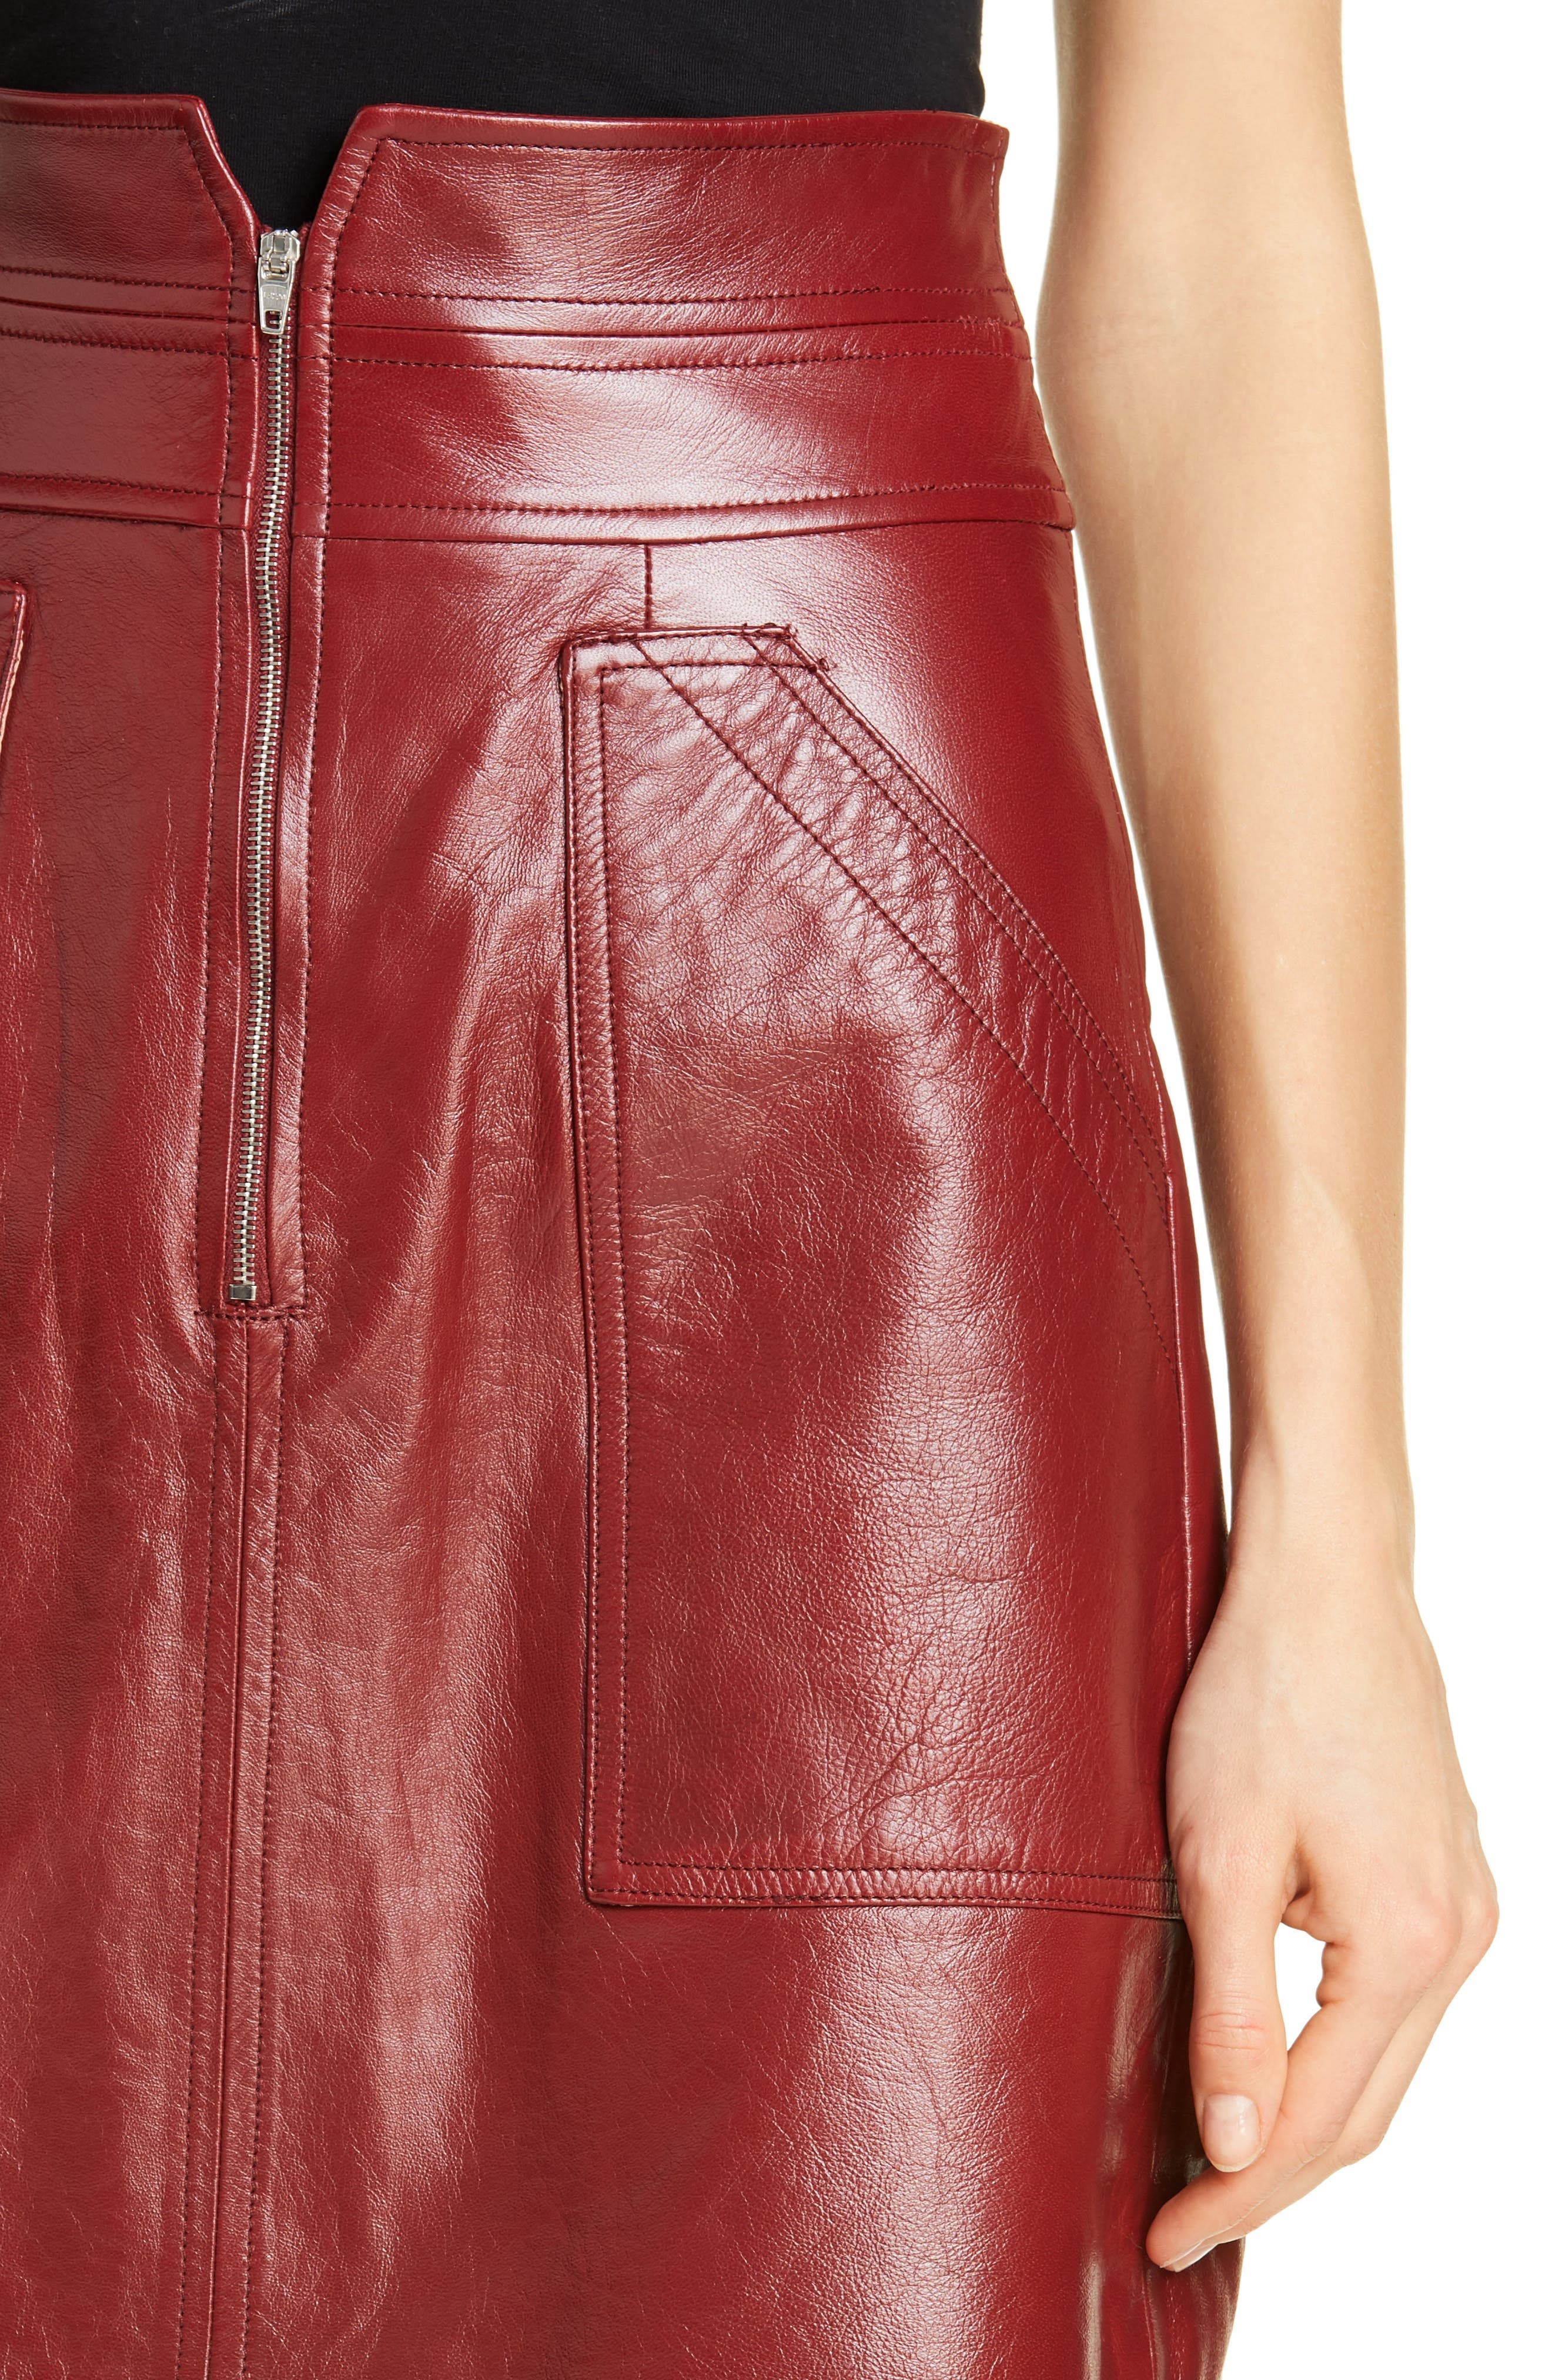 REBECCA TAYLOR, Leather Skirt, Alternate thumbnail 4, color, SPICE